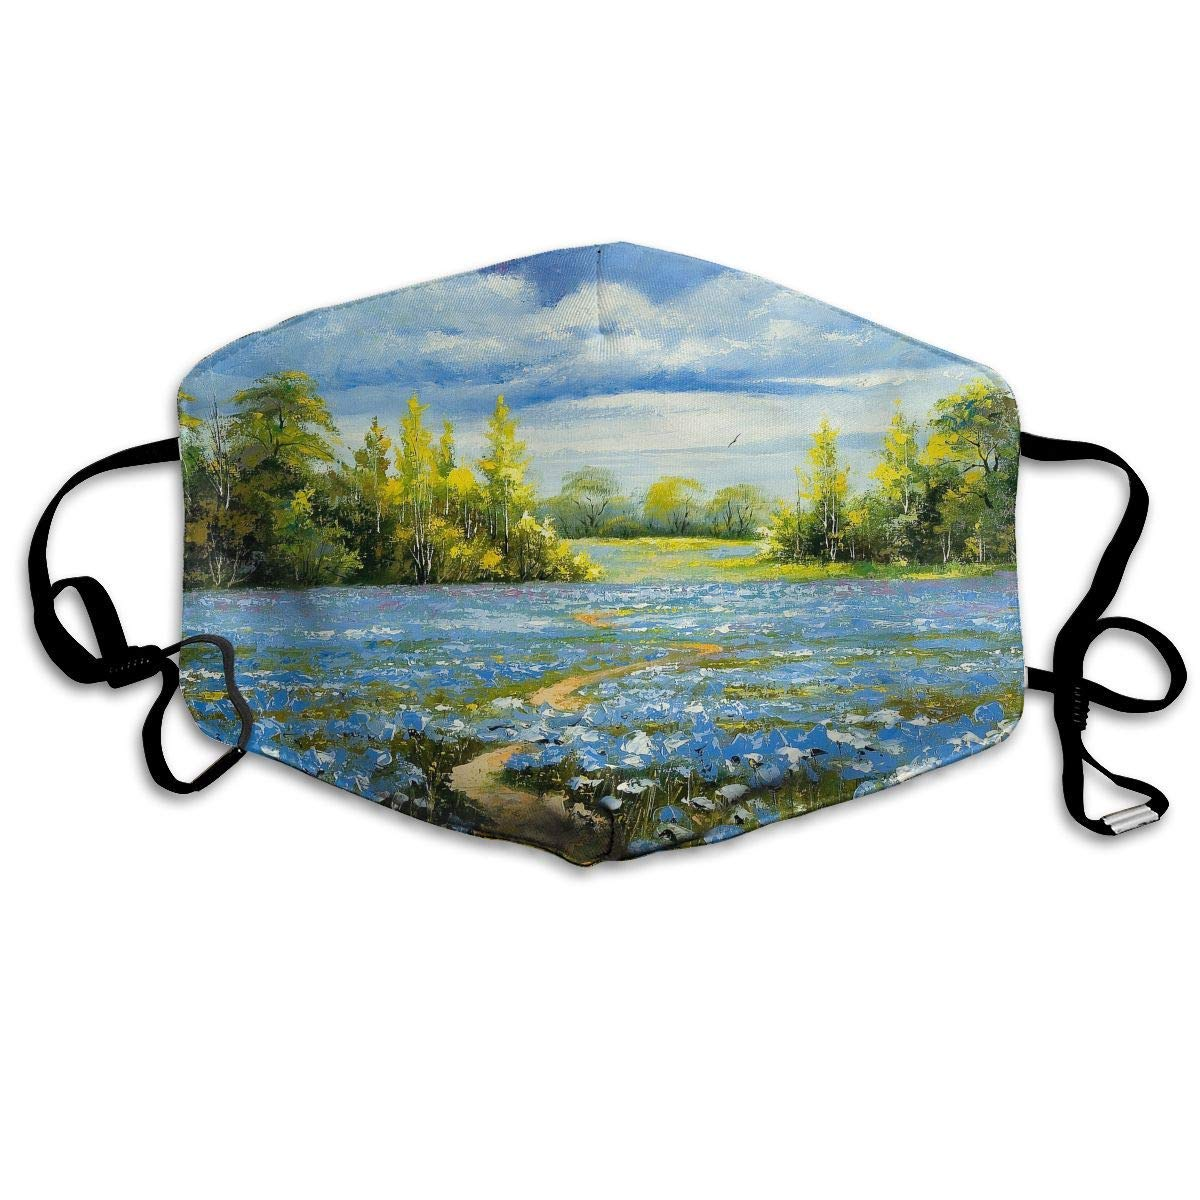 Daawqee Máscara de Boca, Antipolvo Cubierta de Boca Fantasy Landscape Print Reusable Washable Earloop Máscara de Boca for Men Women